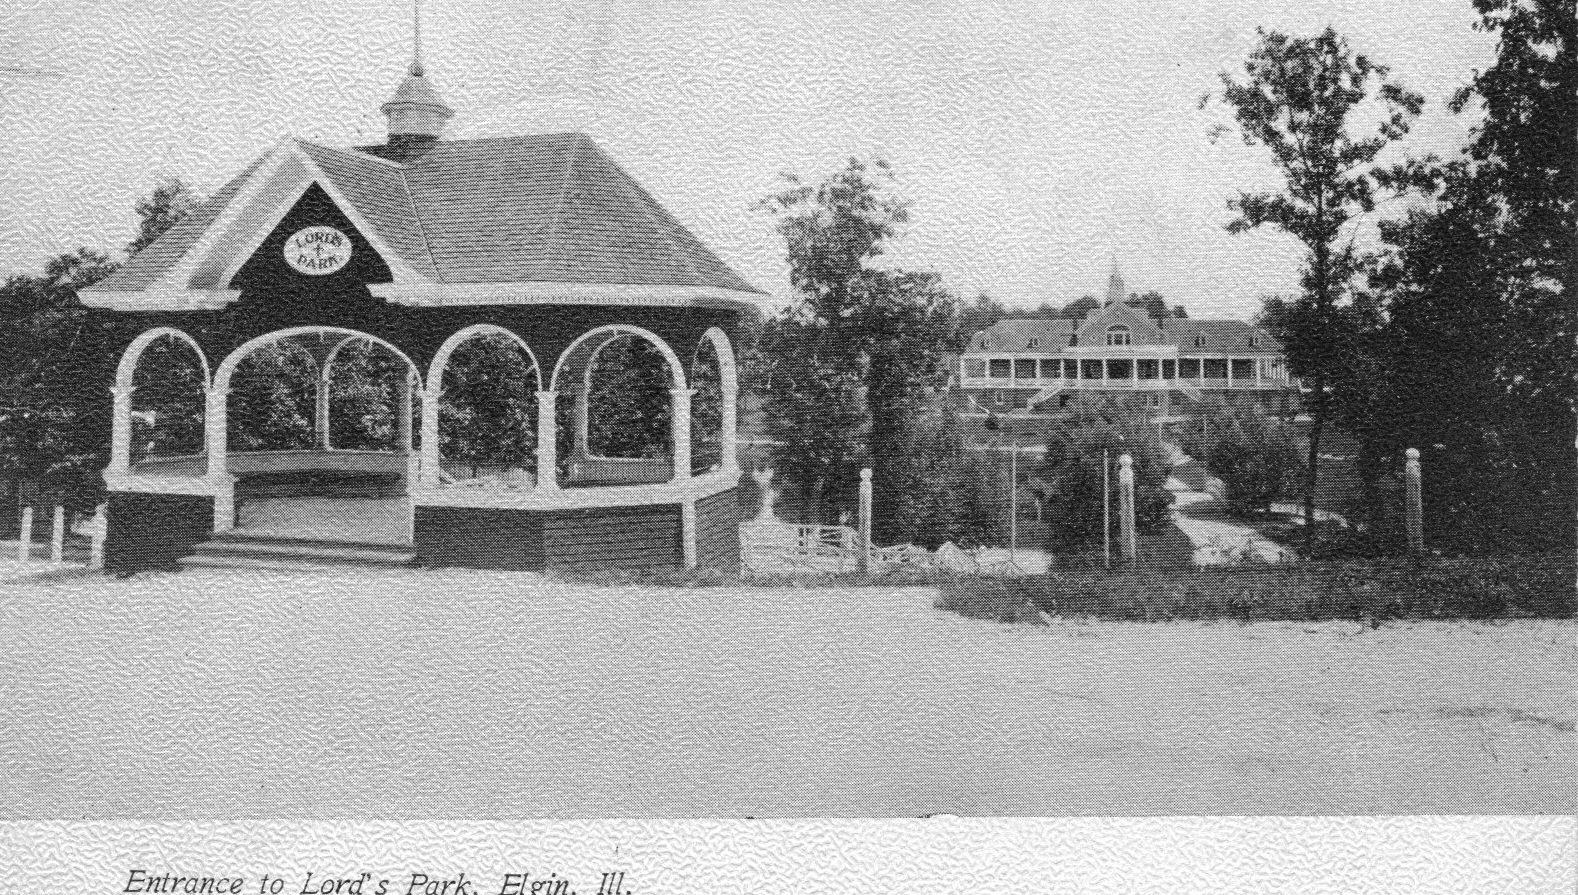 Lords-Park-entrance-1908.jpg